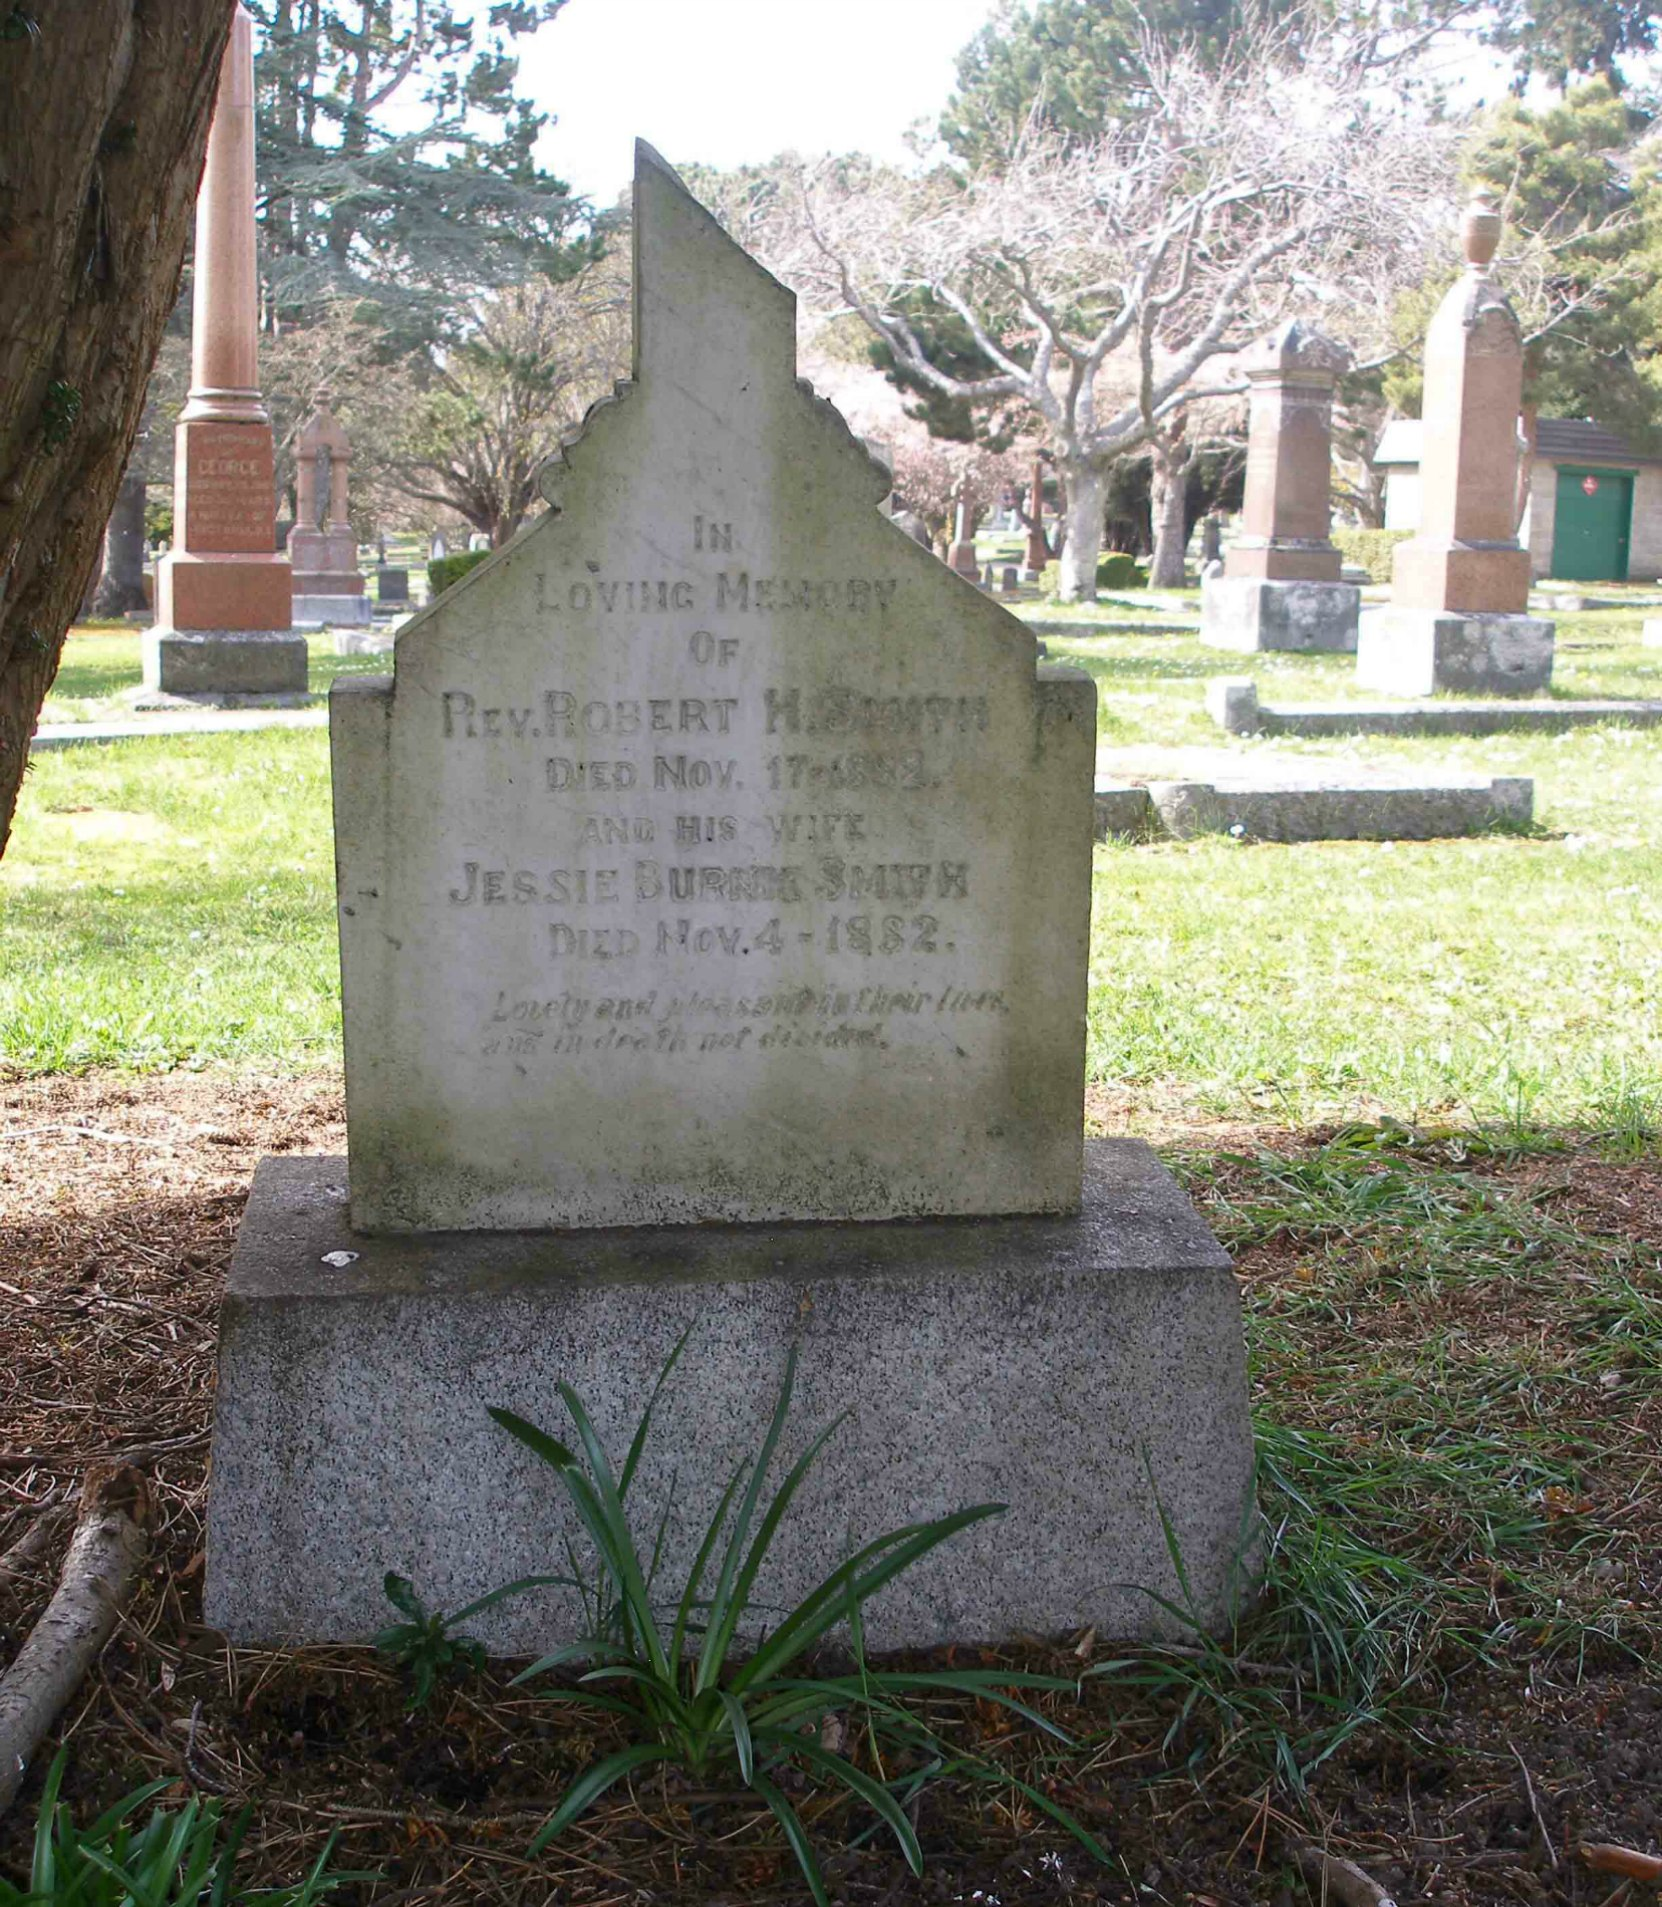 The grave of Reverend Robert Hall Smith and Jessie Burnes Smith, Ross Bay Cemetery, Victoria, B.C.